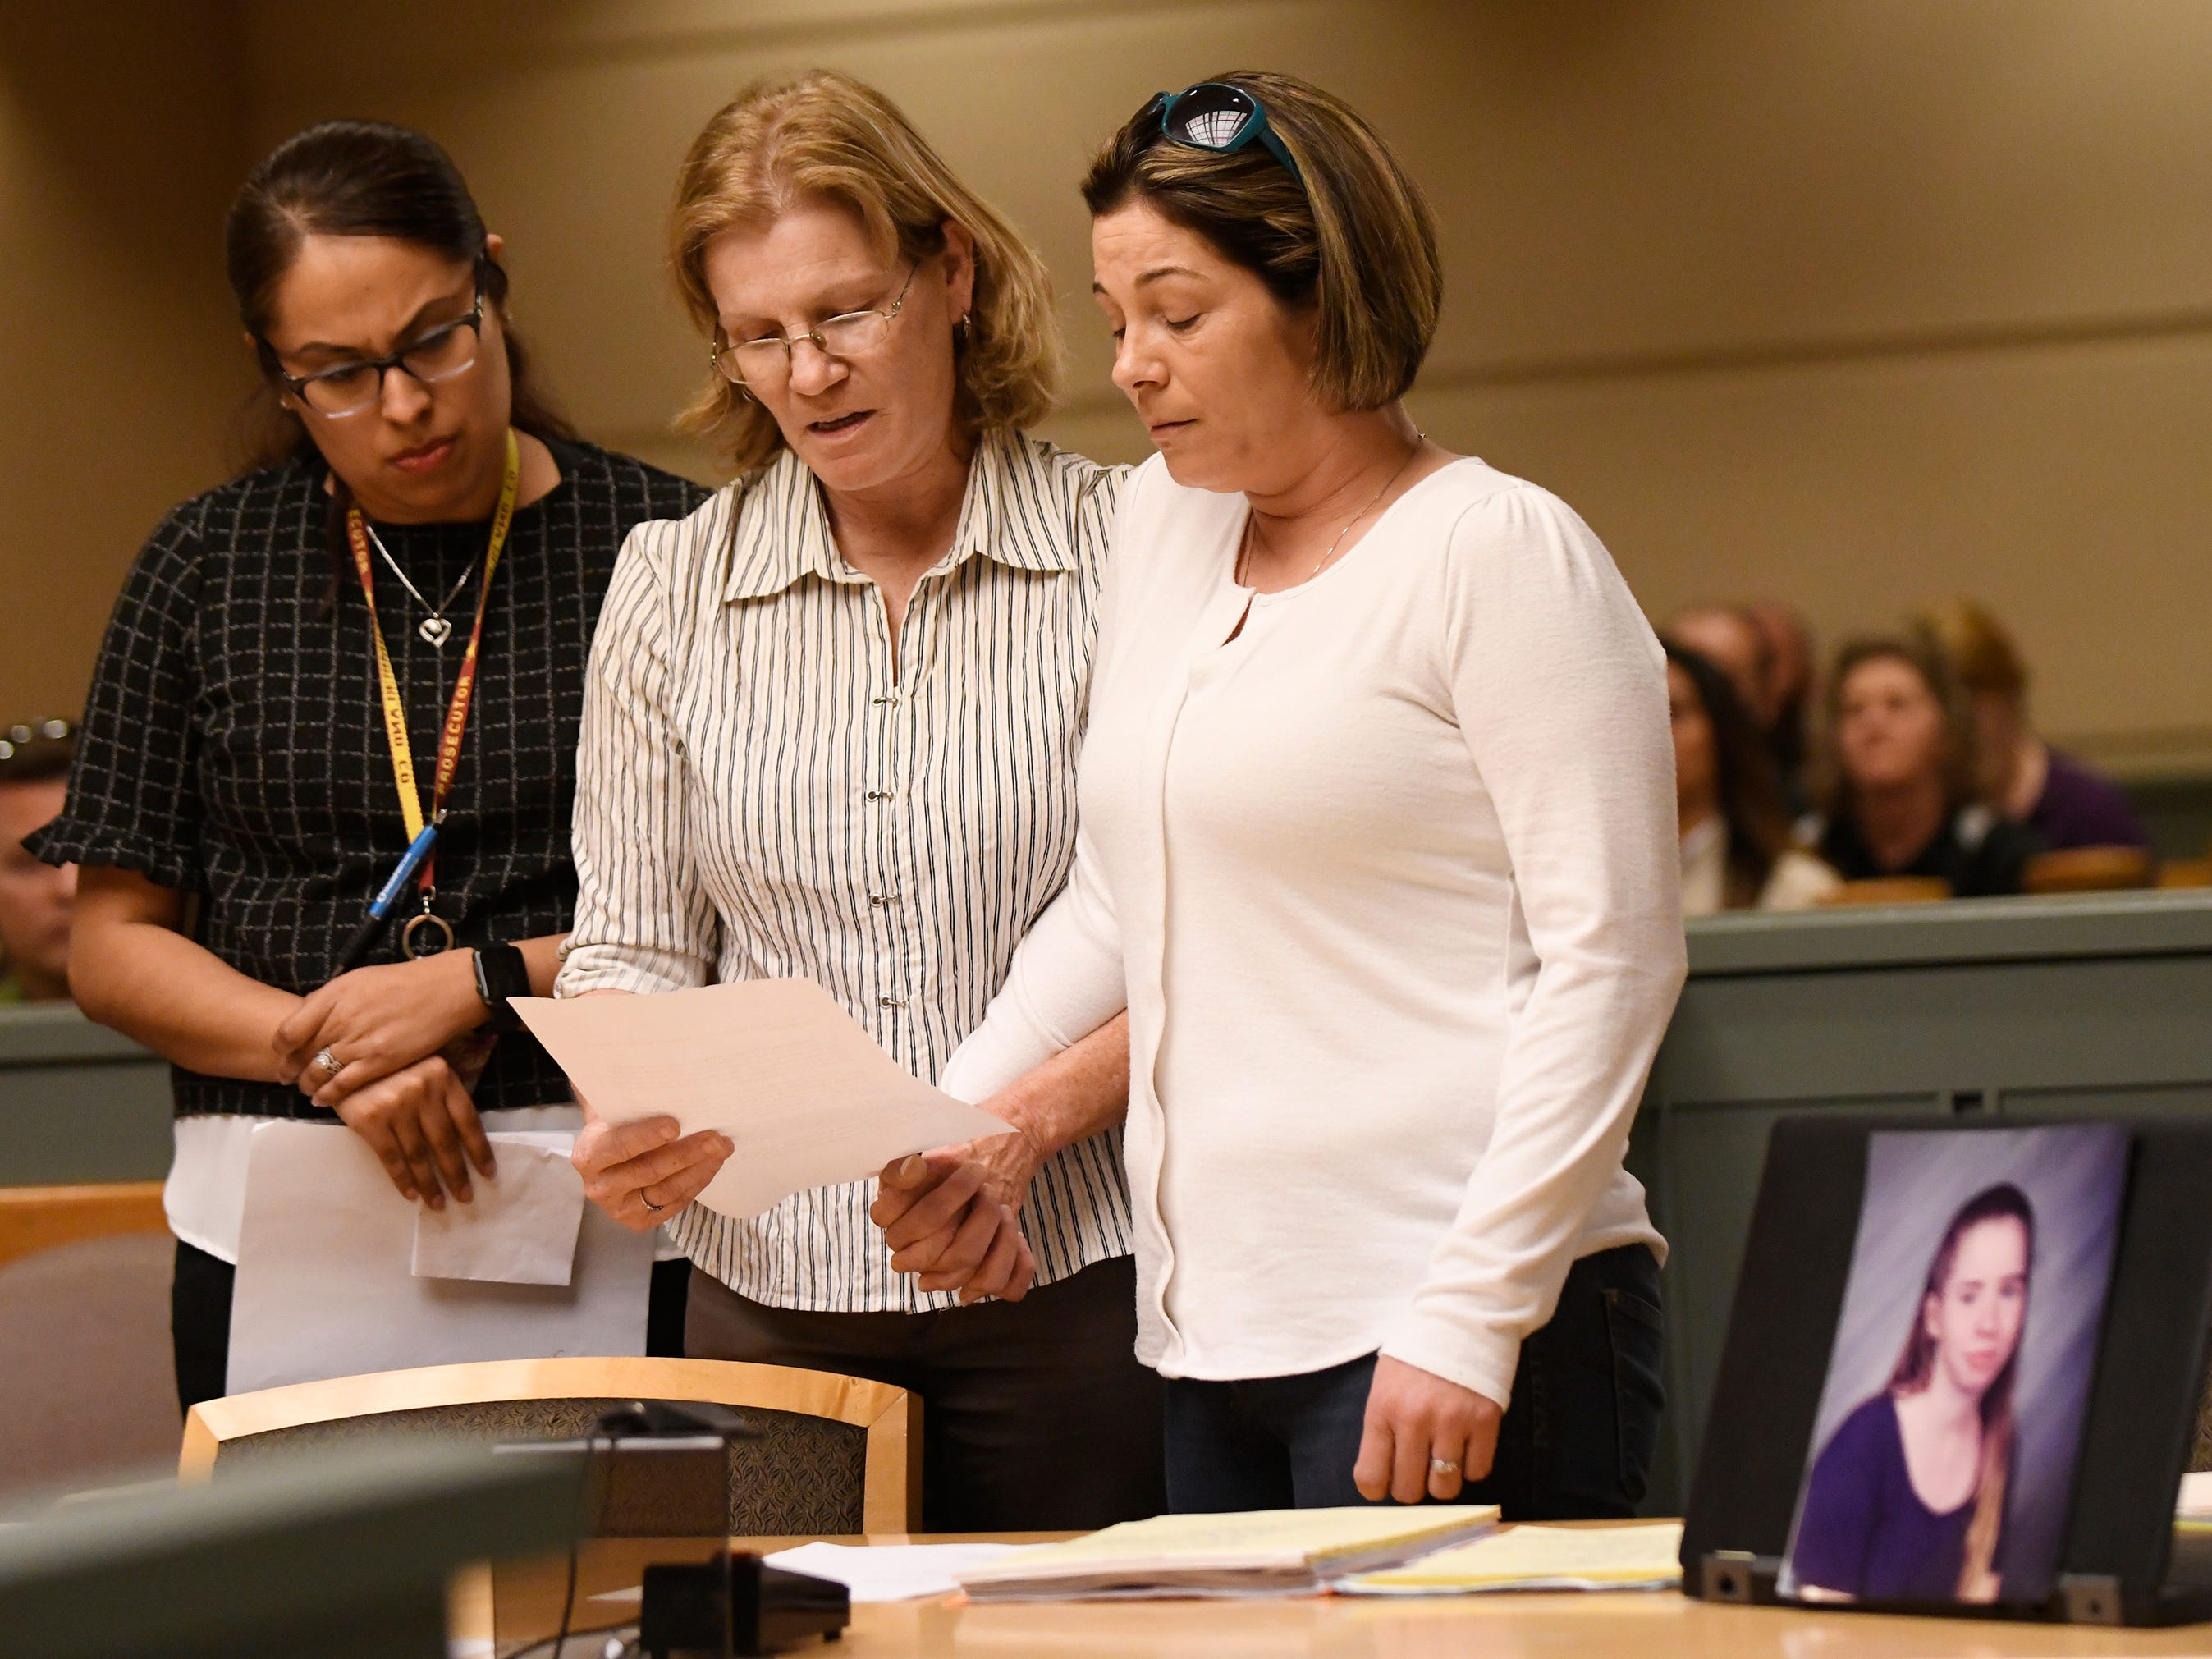 Family members of Tara O'Shea-Watson speak during the sentencing of Jeremiah E. Monell in Cumberland County Superior Court on Friday, Mar. 15, 2019. Monell, who stabbed and slashed his estranged wife to death, was sentenced to spend the rest of his life in a state prison.